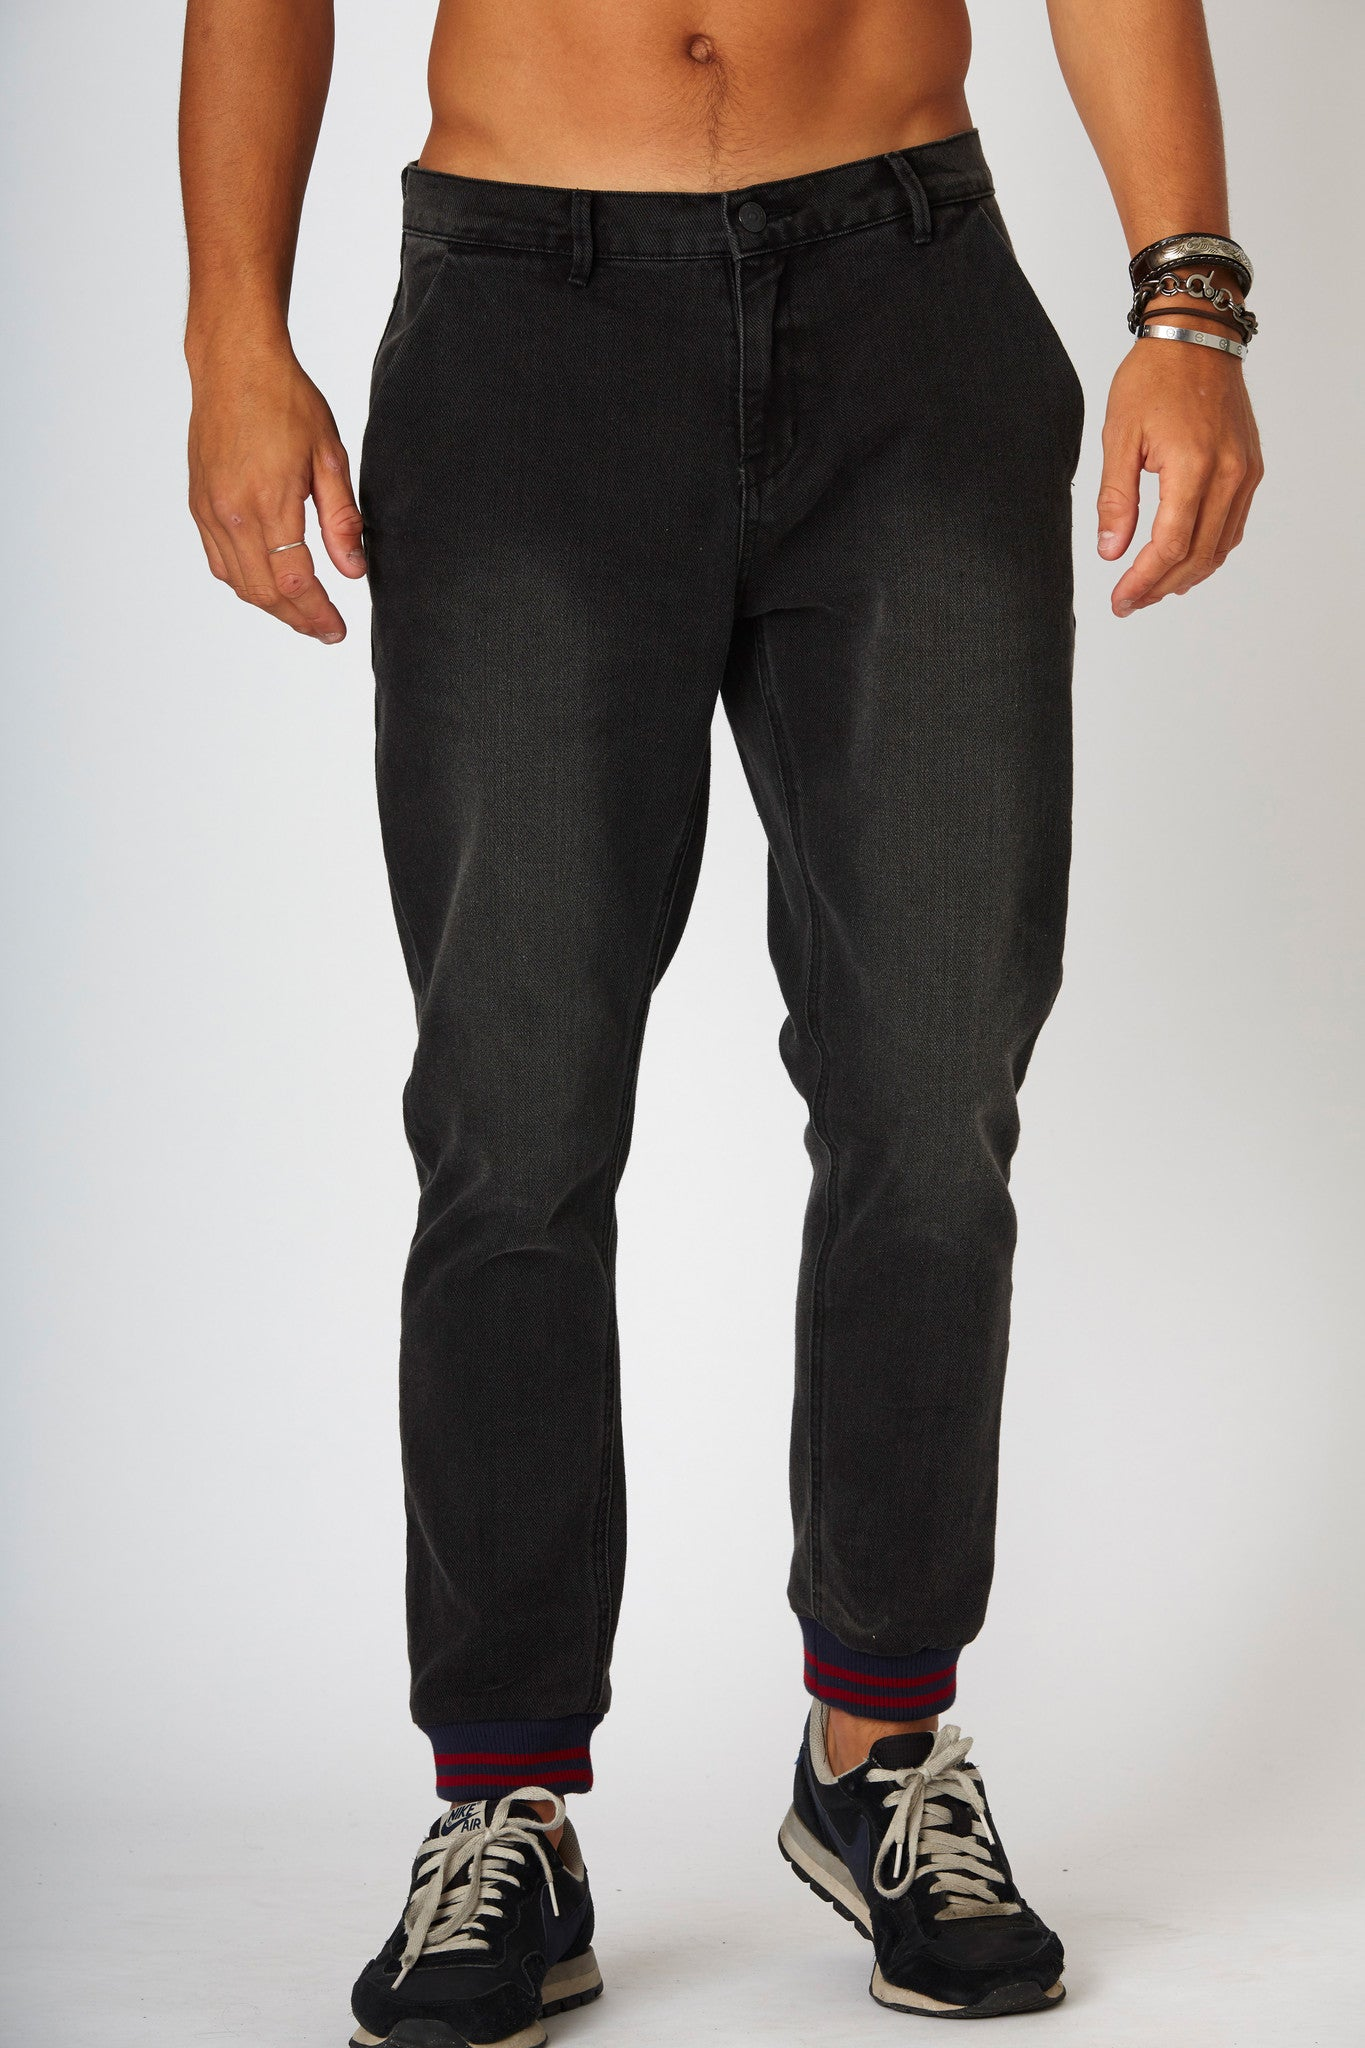 #2A11 Jogger Jean Kinetic Black - denimcolab